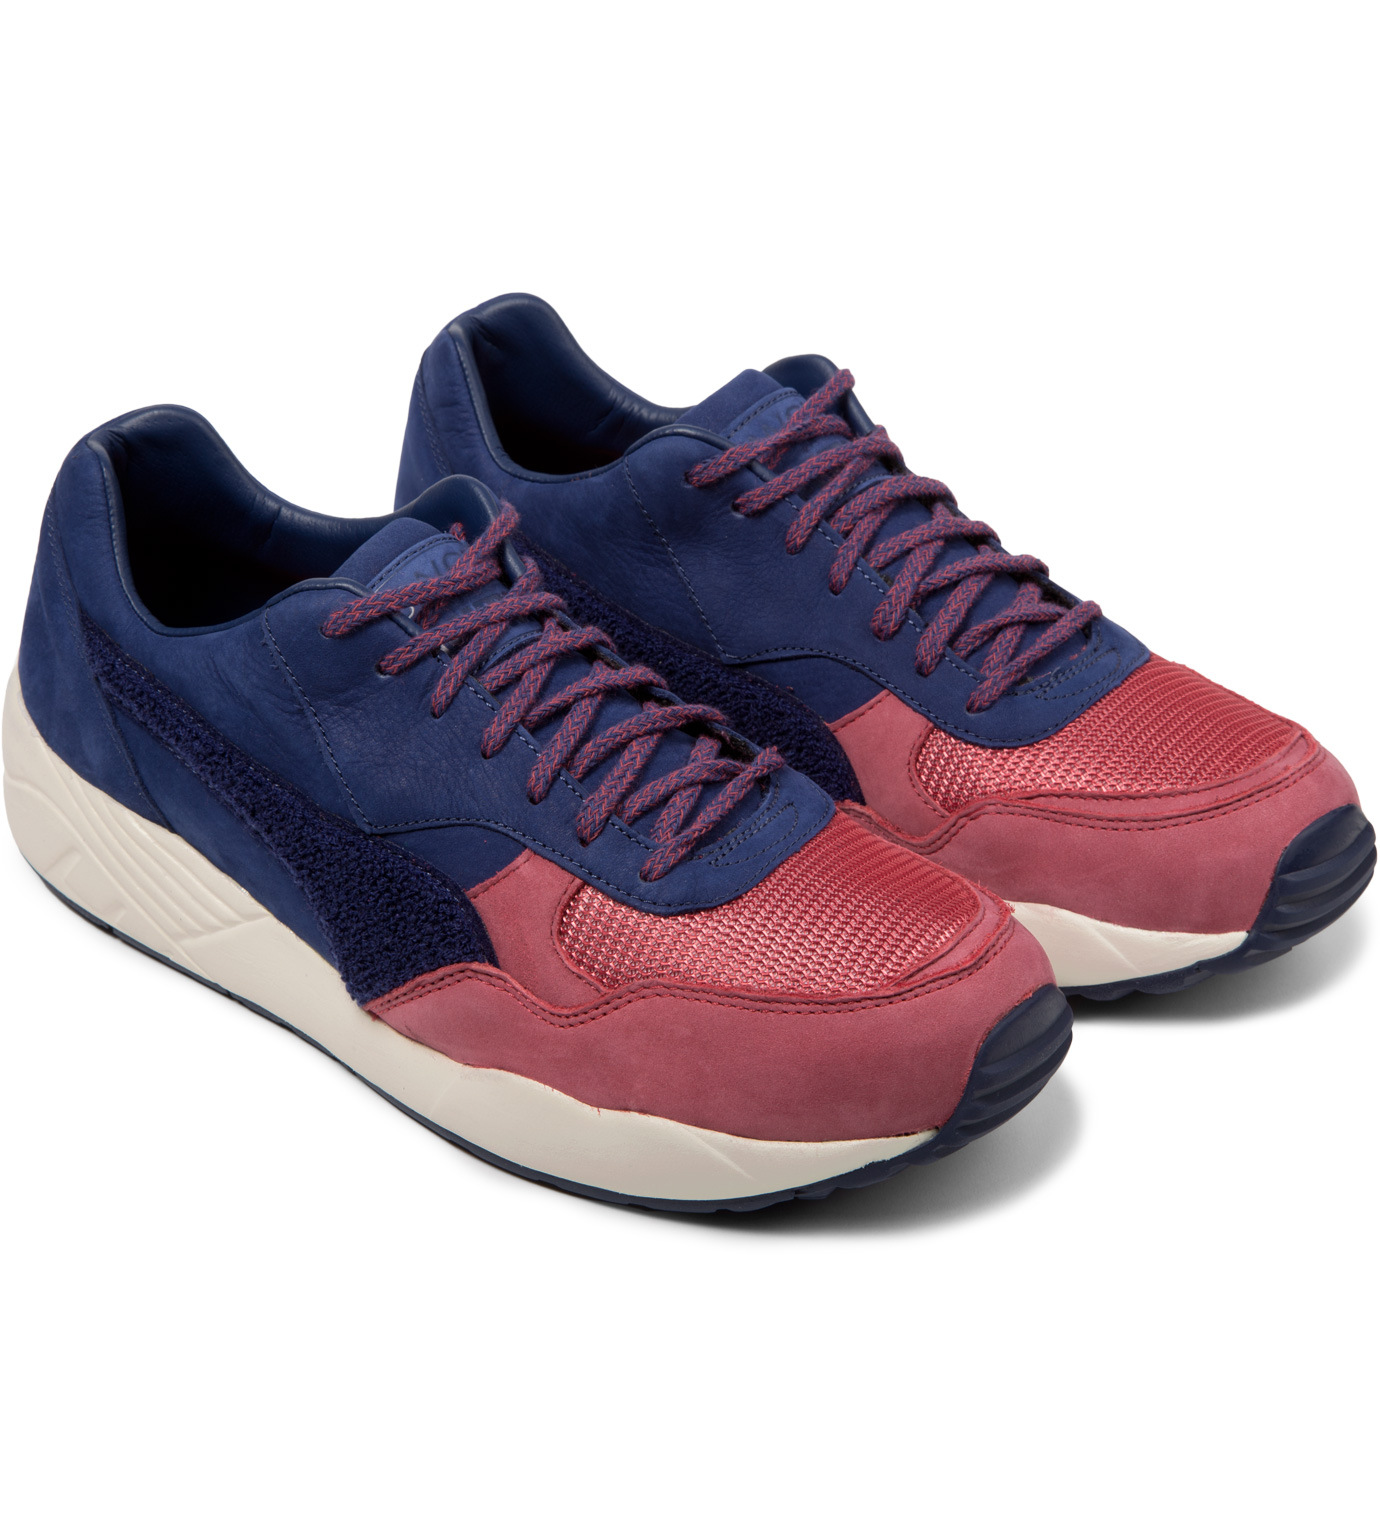 meilleure sélection 4aa60 5072d BWGH x PUMA Patriot Blue XS-698 Shoes, Puma